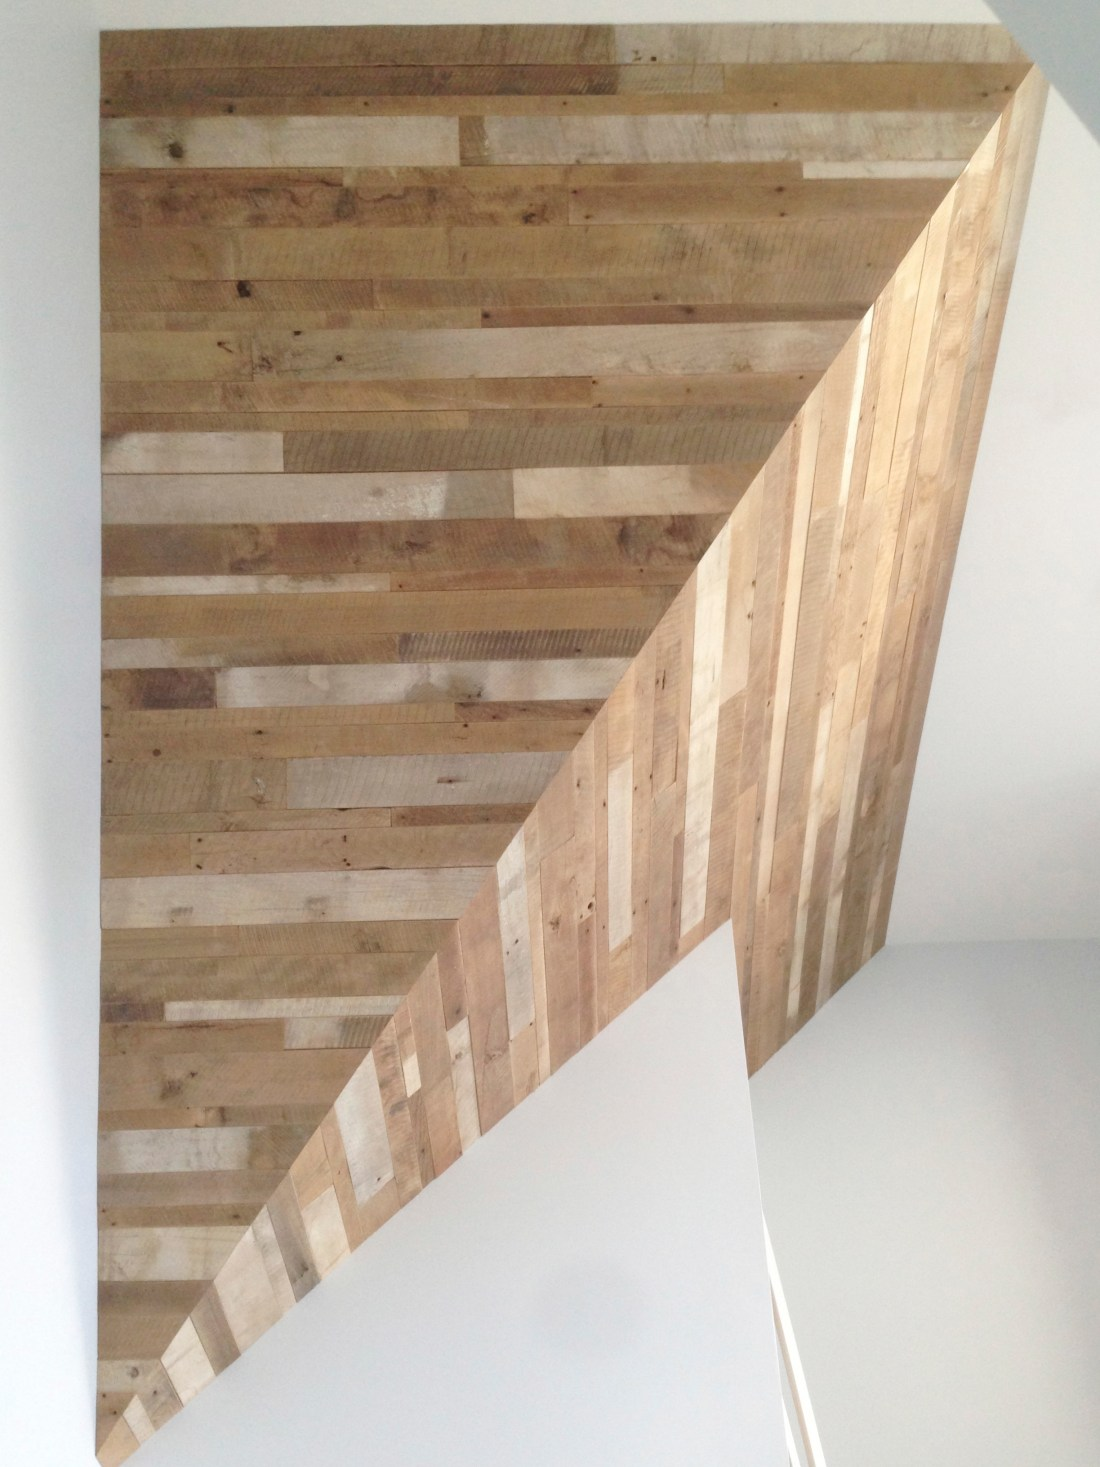 Geometrical ceiling treatment finished with hand prepared barn wood